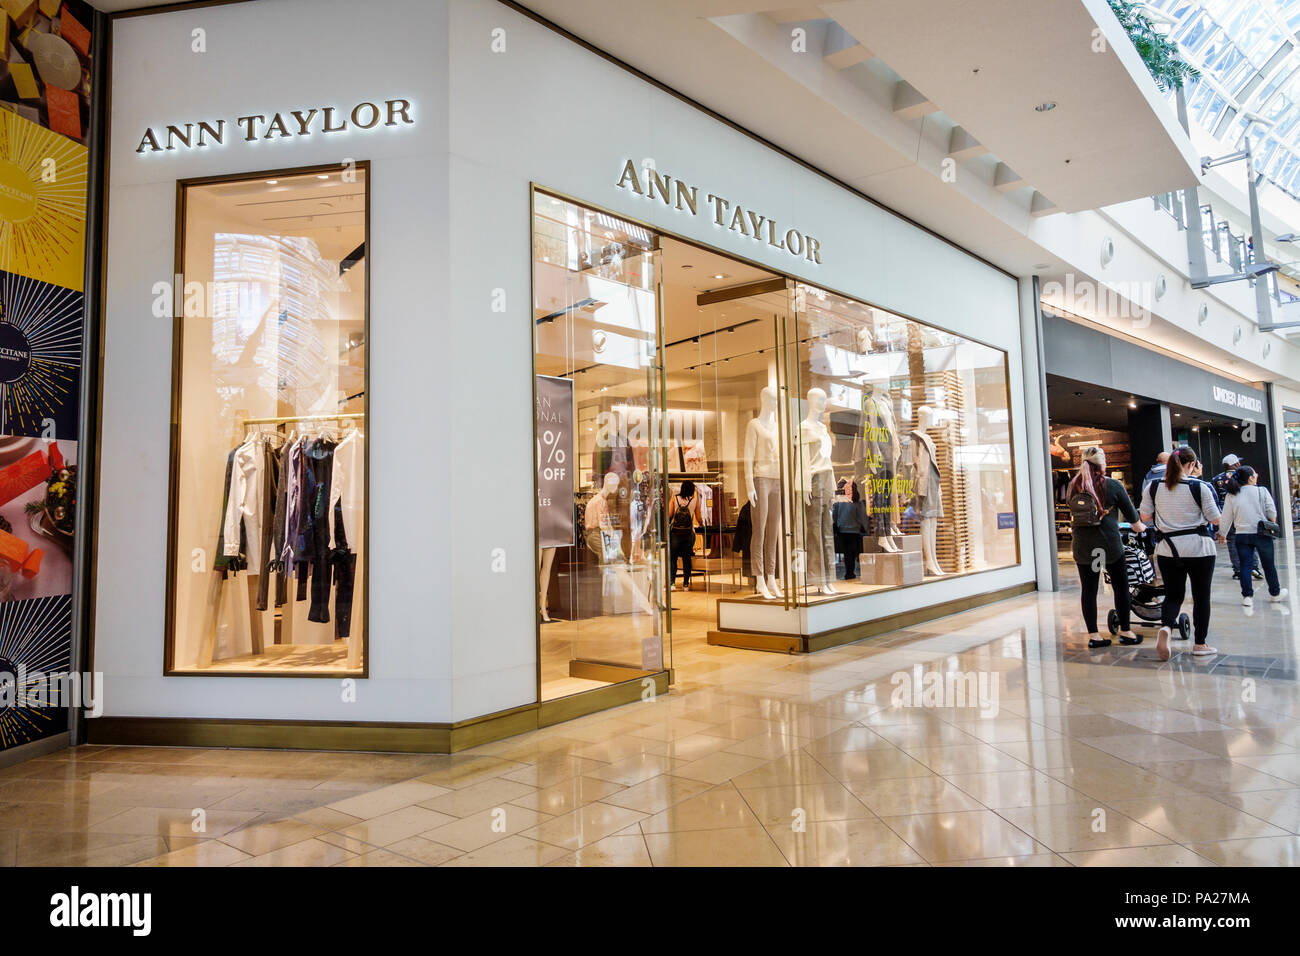 65e846f795e3d Orlando Floride The Mall at Millenia shopping Ann Taylor Women s clothing  store affichage fenêtre détaillant intérieur